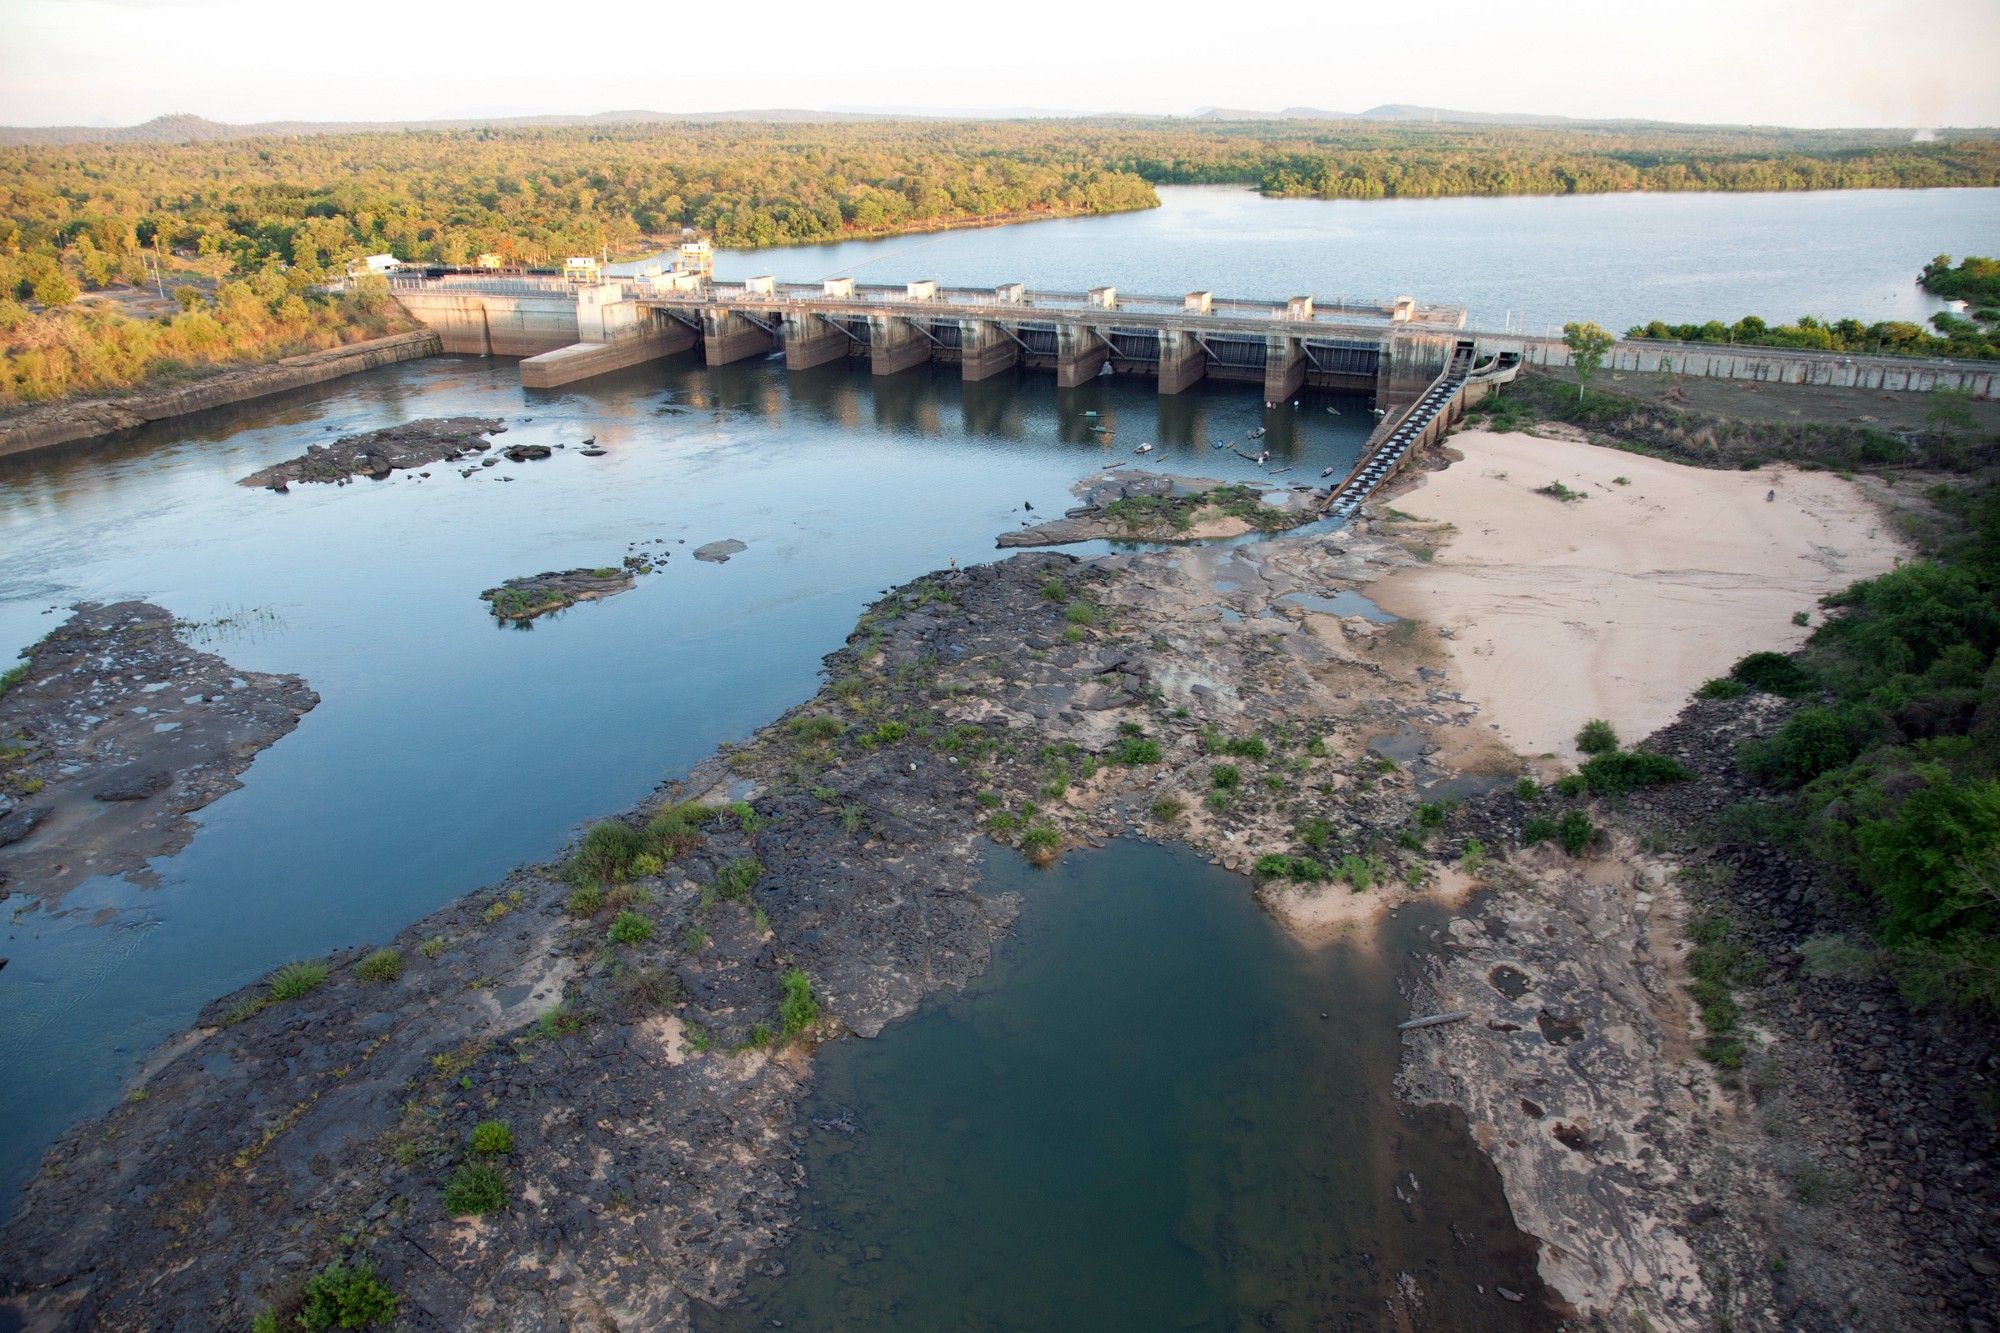 large dams and their environmental impacts The construction of large dams completely completing changing their circulation systems: this is not going to occur without dire environmental impacts.